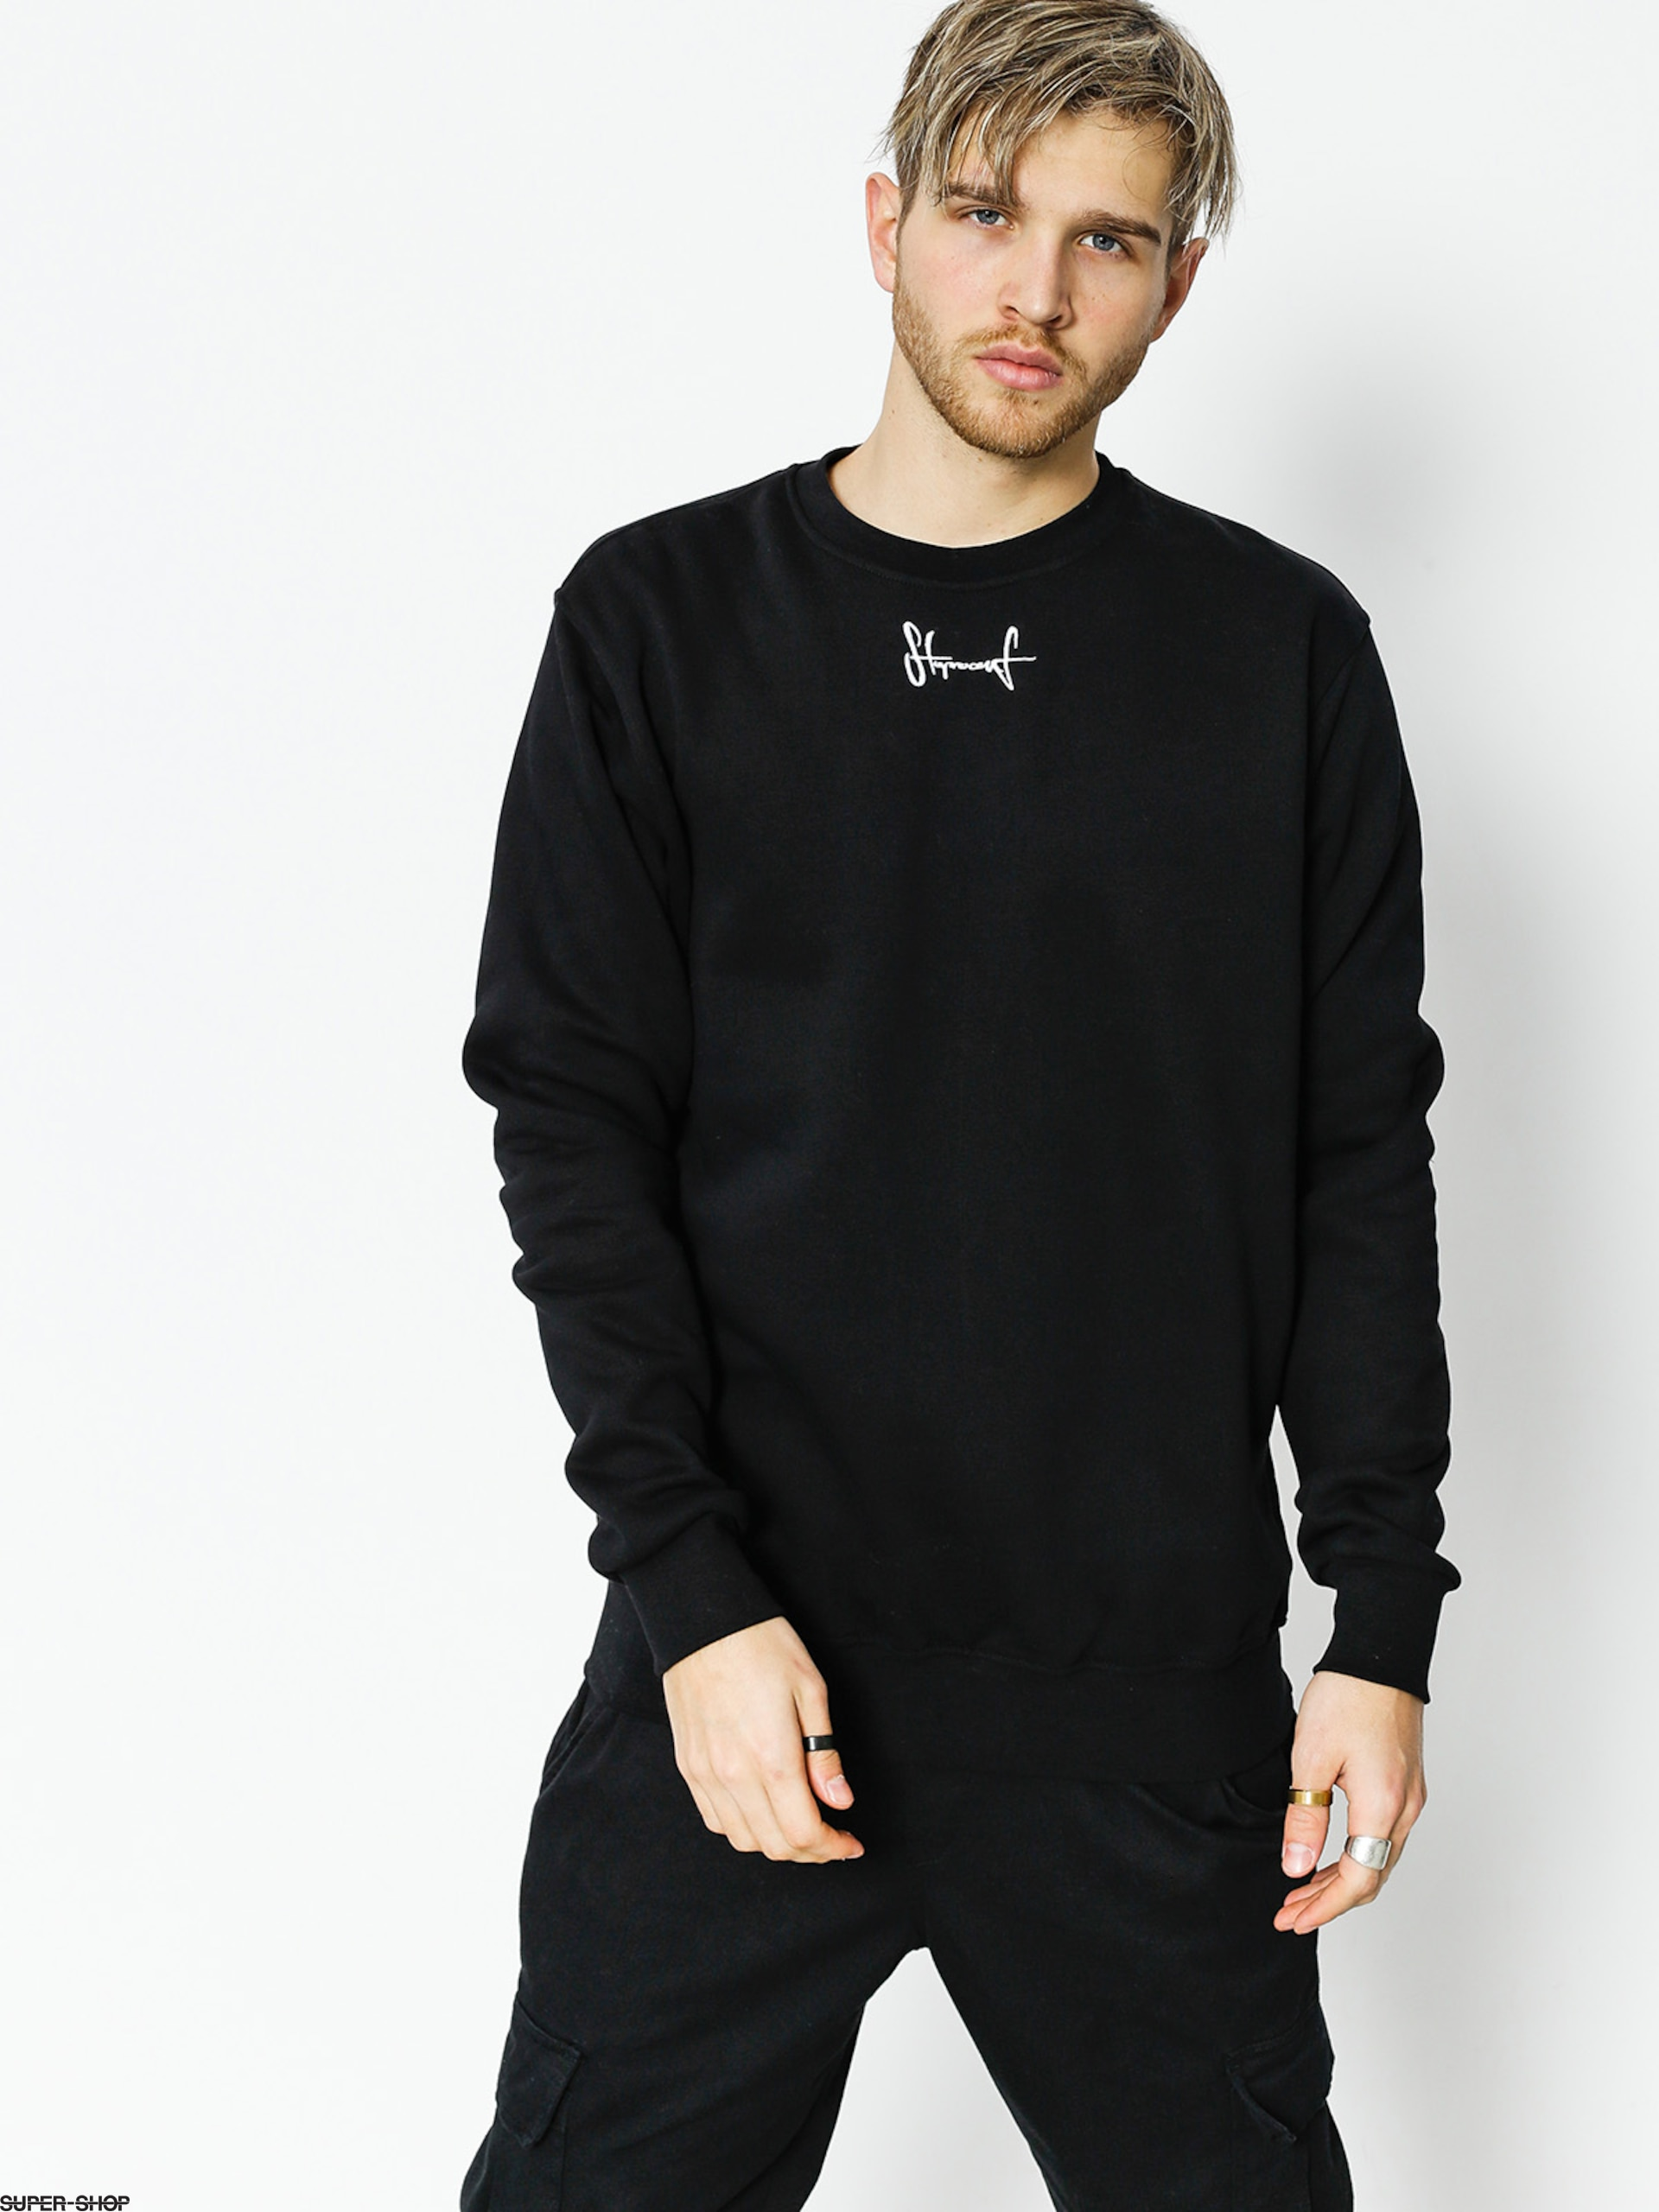 Stoprocent Sweatshirt Base 17